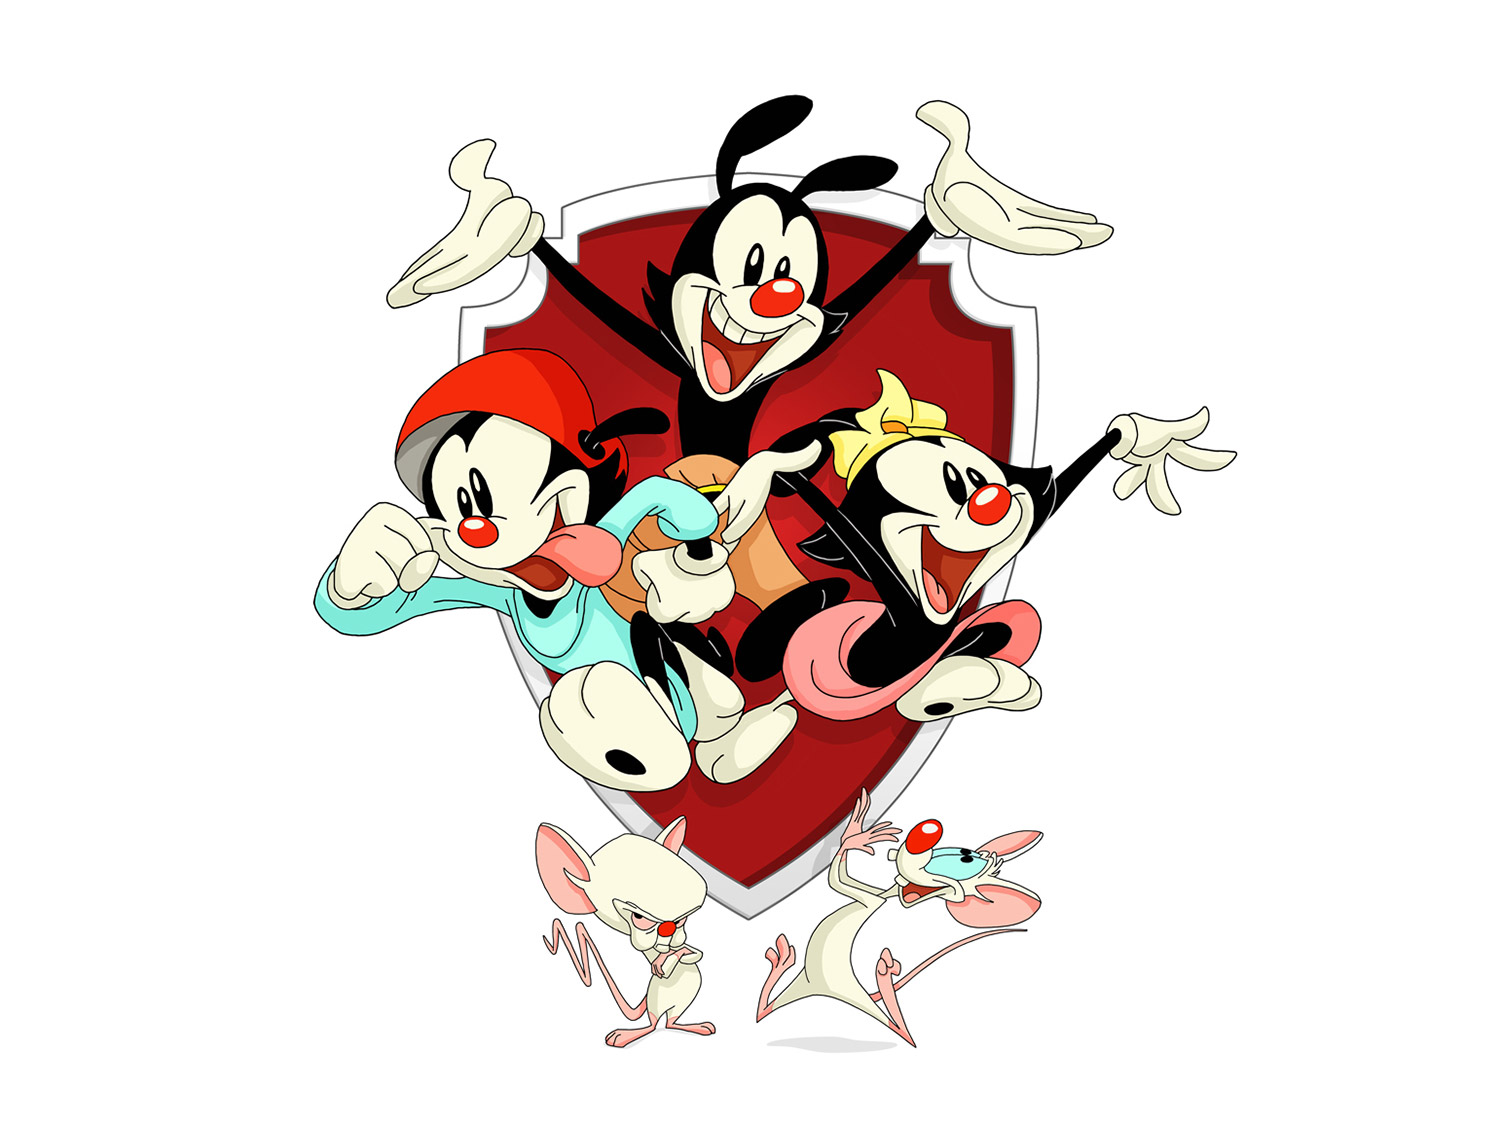 9 'Animaniacs' Food Moments to Celebrate The Classic Cartoon Series' Return